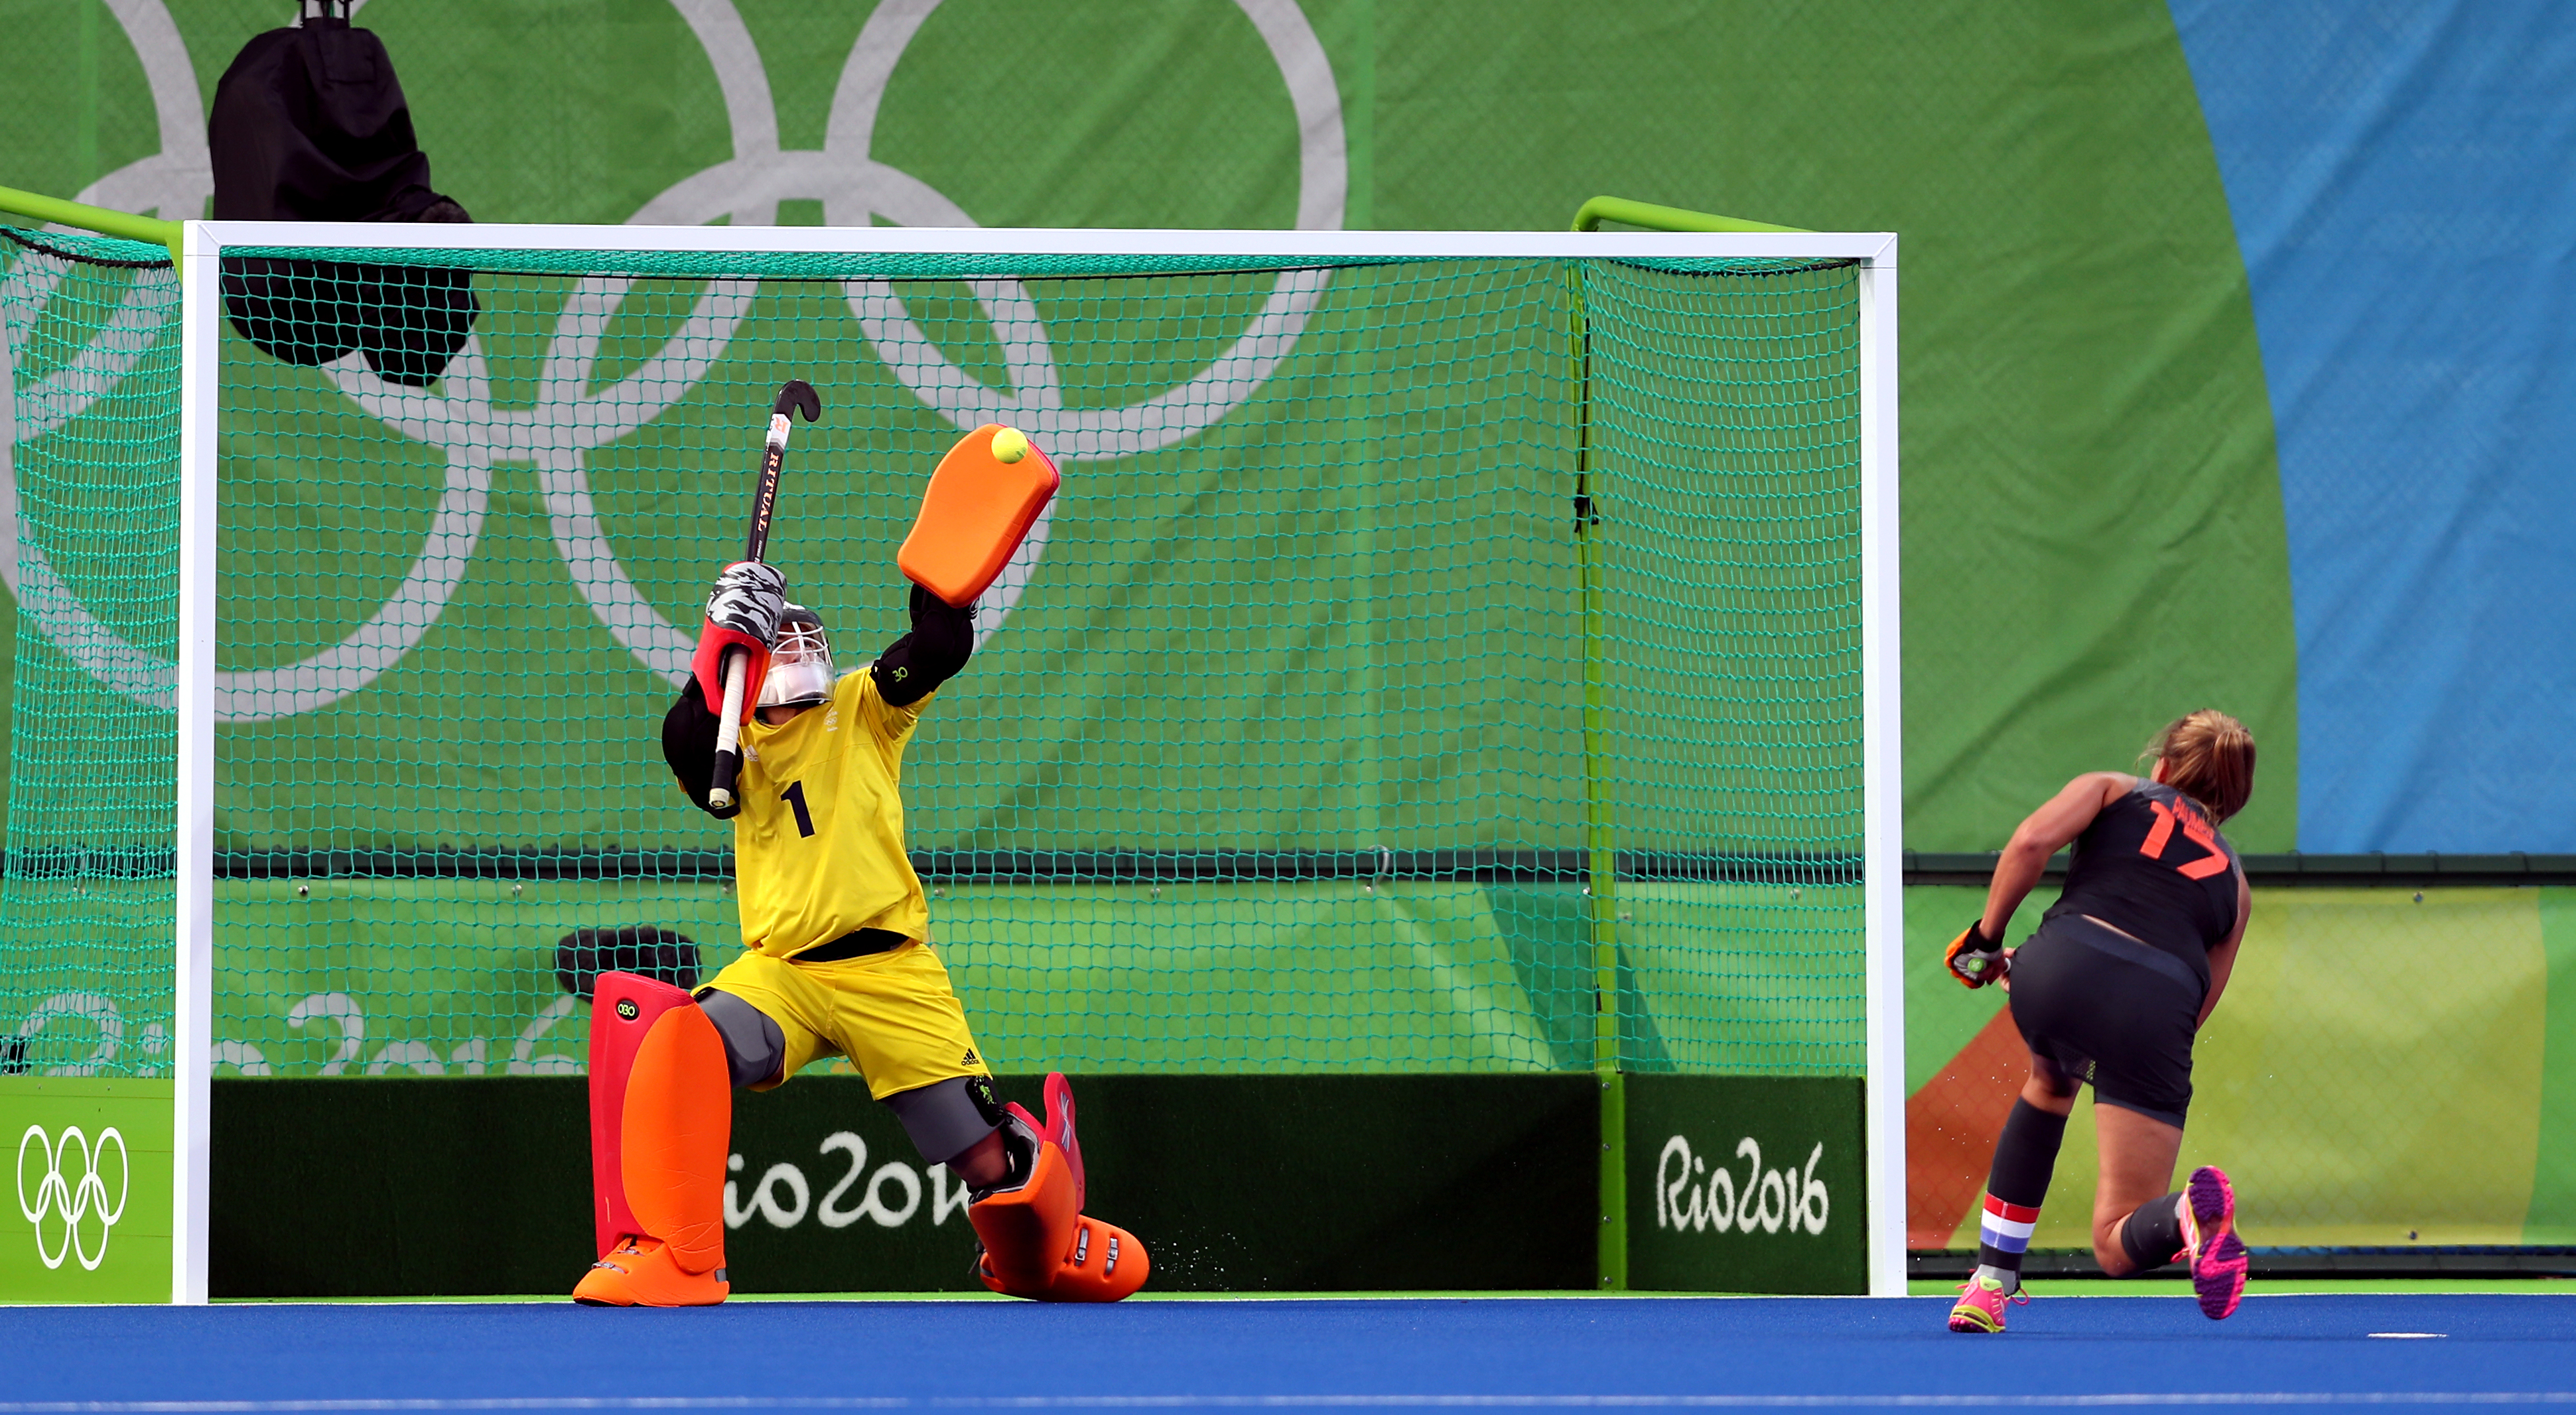 Maddie Hinch saves a penalty from Netherlands' Maartje Paumen during the gold medal match in Rio